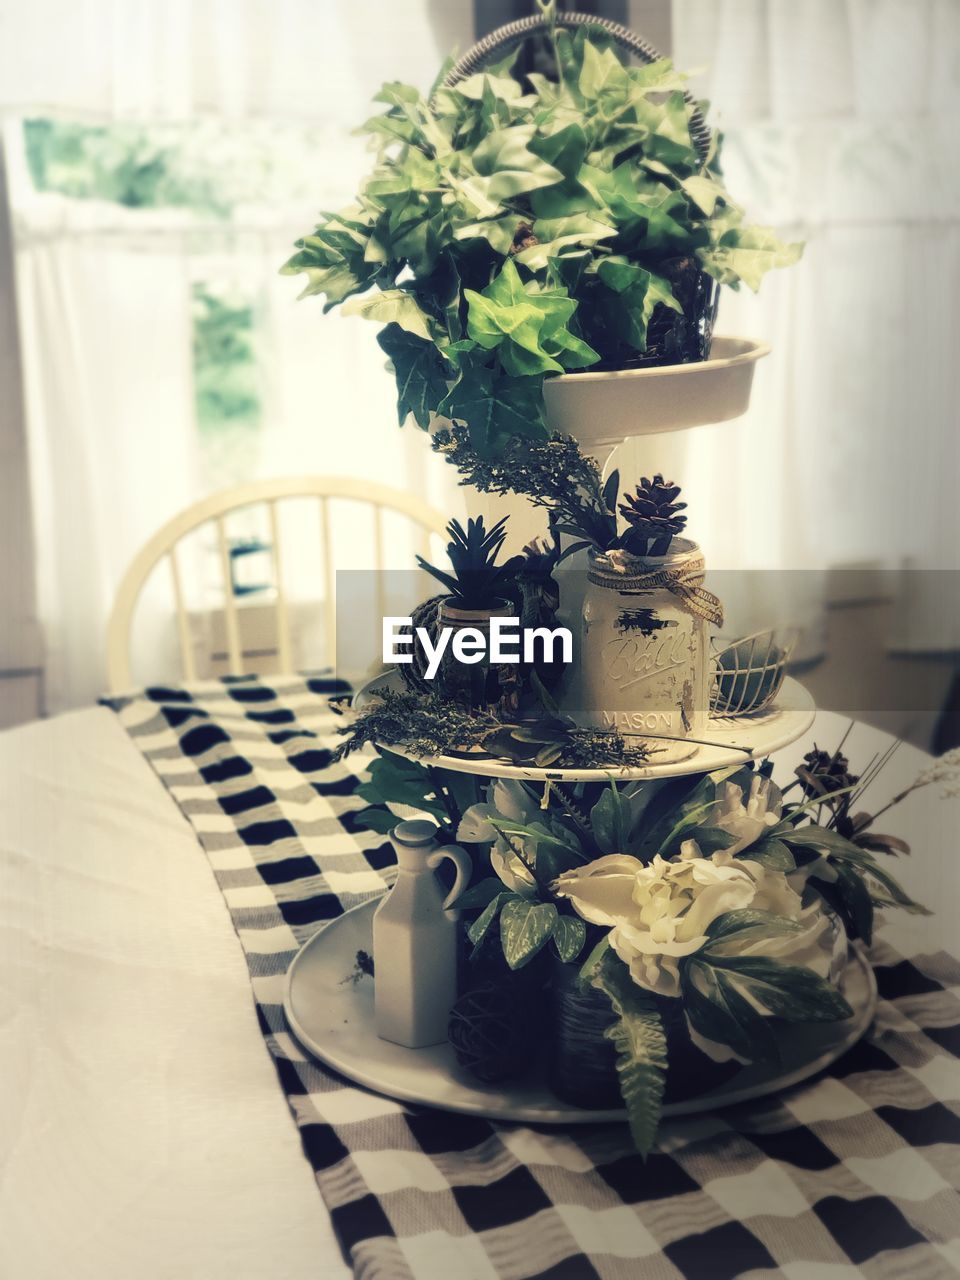 indoors, table, plant, no people, nature, flower, flowering plant, potted plant, food and drink, decoration, vase, furniture, home interior, food, freshness, still life, close-up, day, focus on foreground, cup, tray